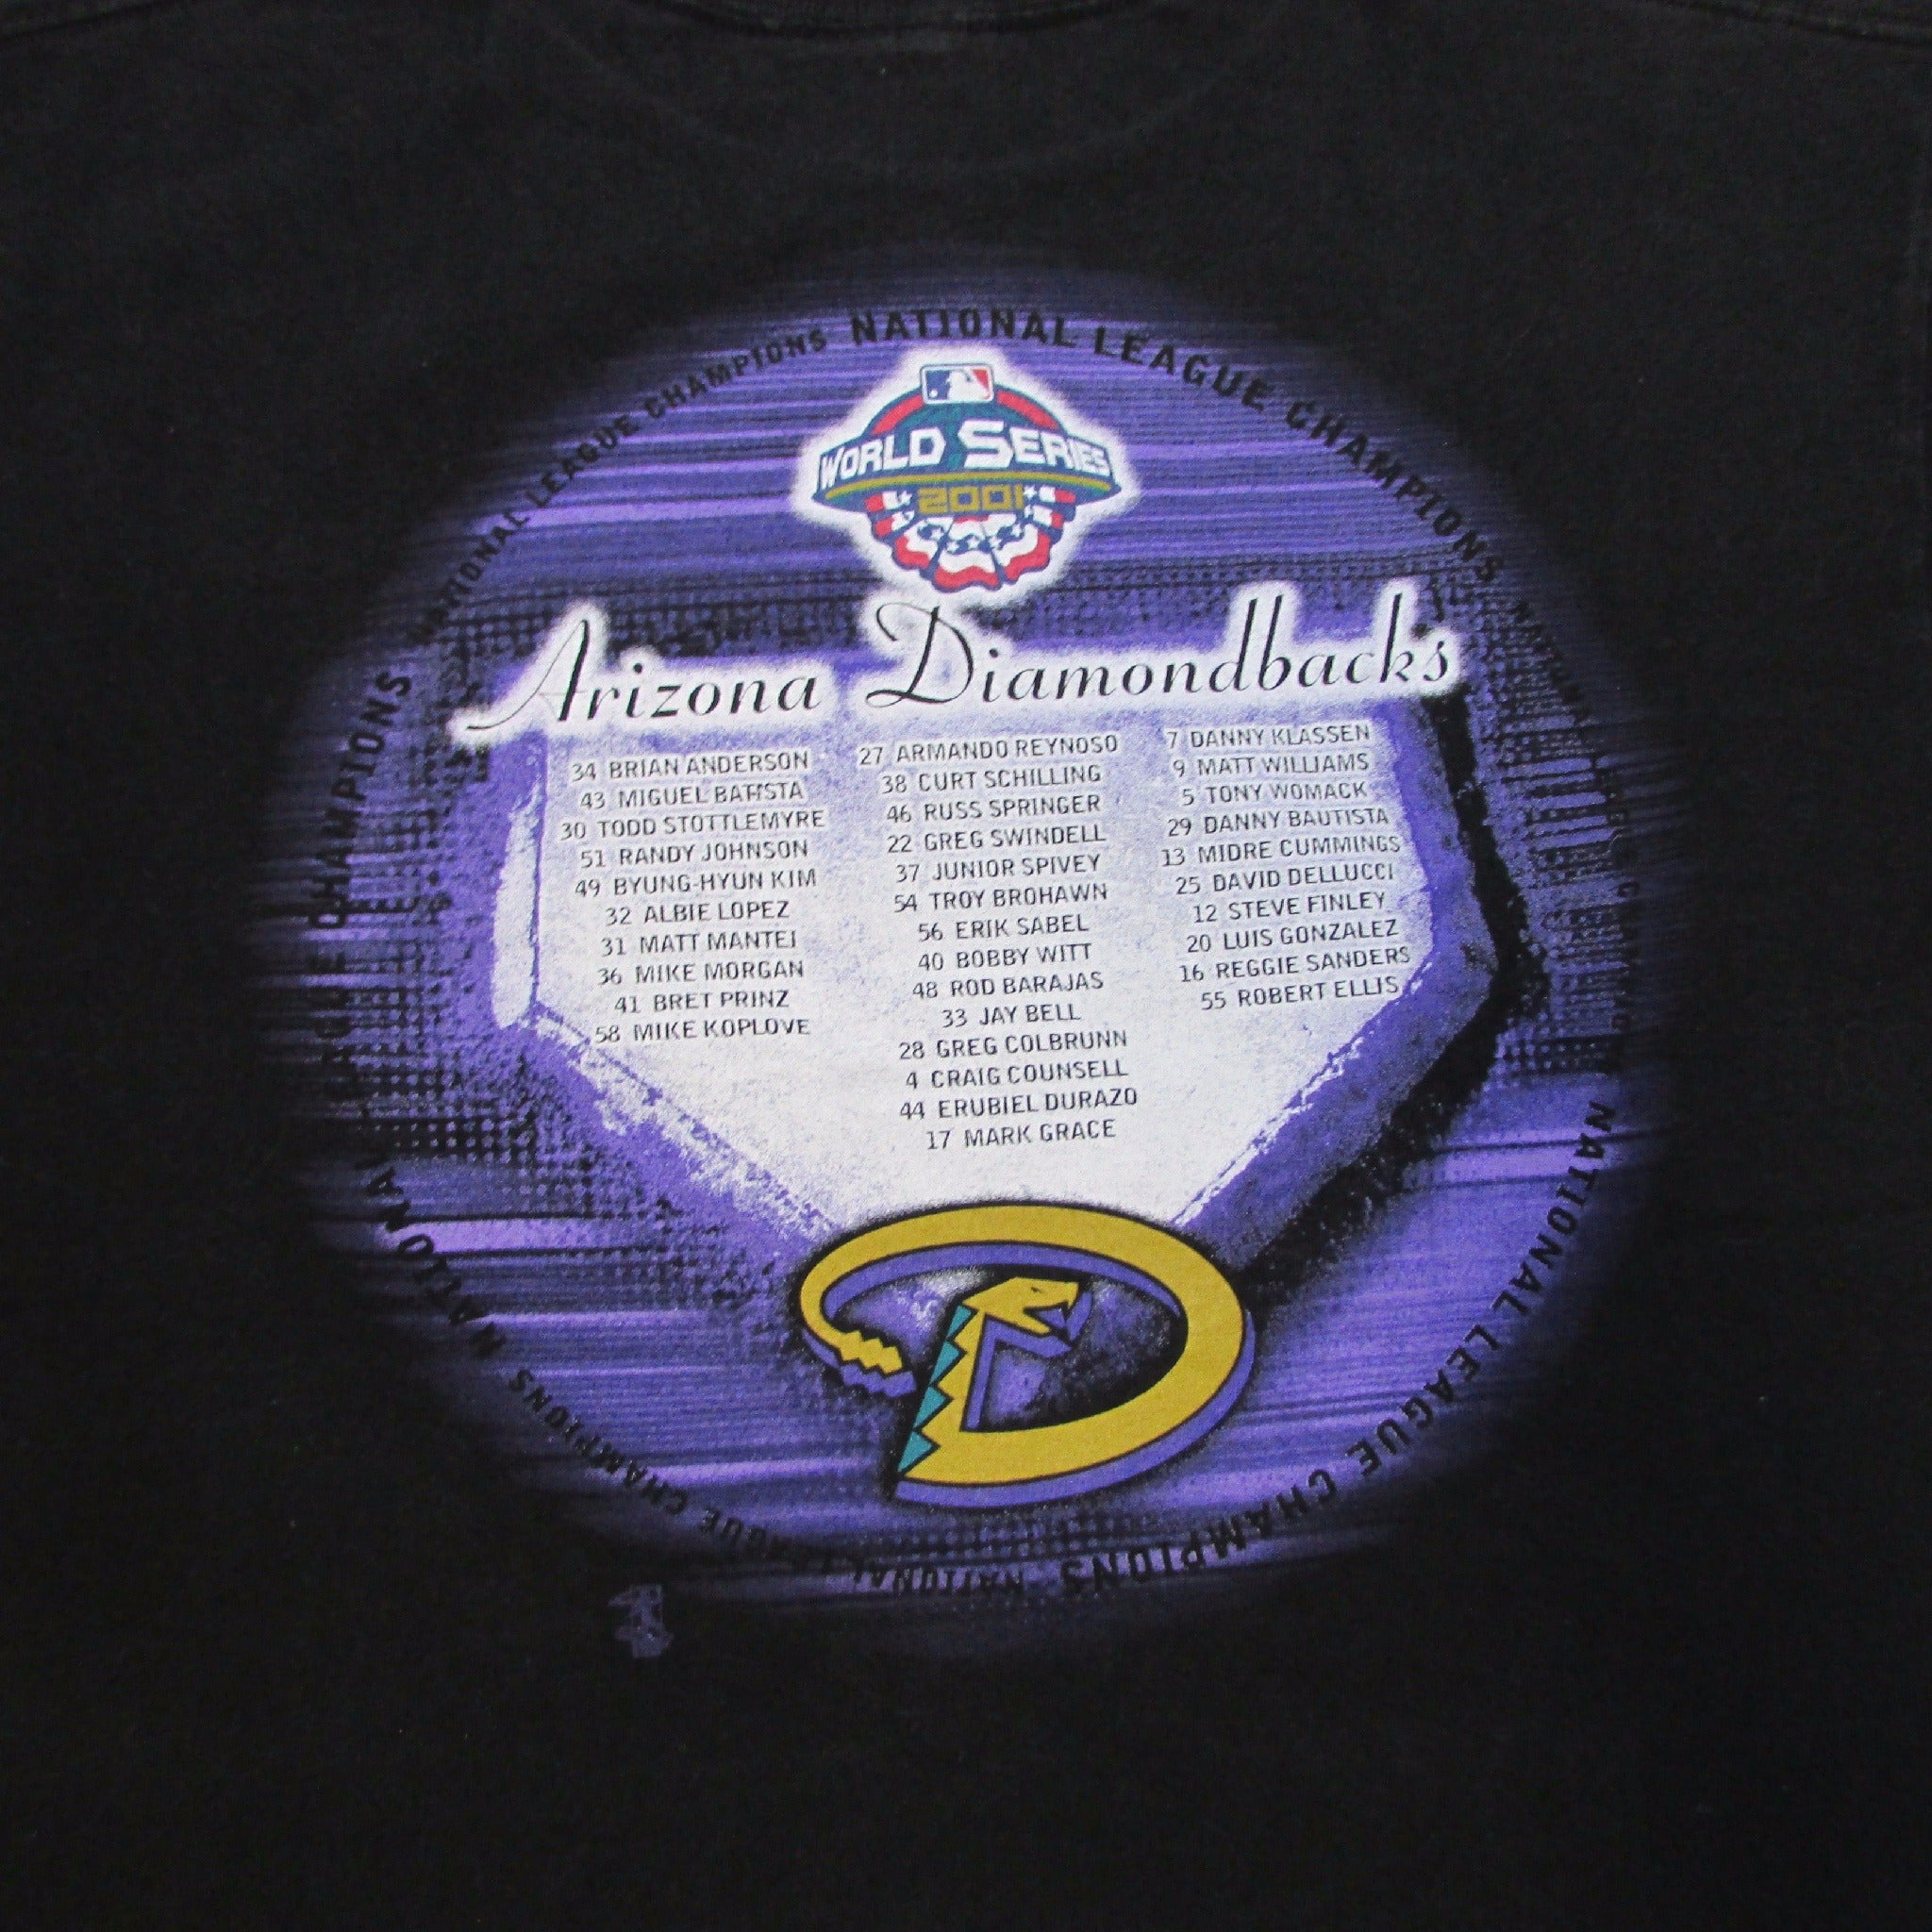 Arizona Diamondbacks 2001 National League Champions T-Shirt Majestic Sz XL